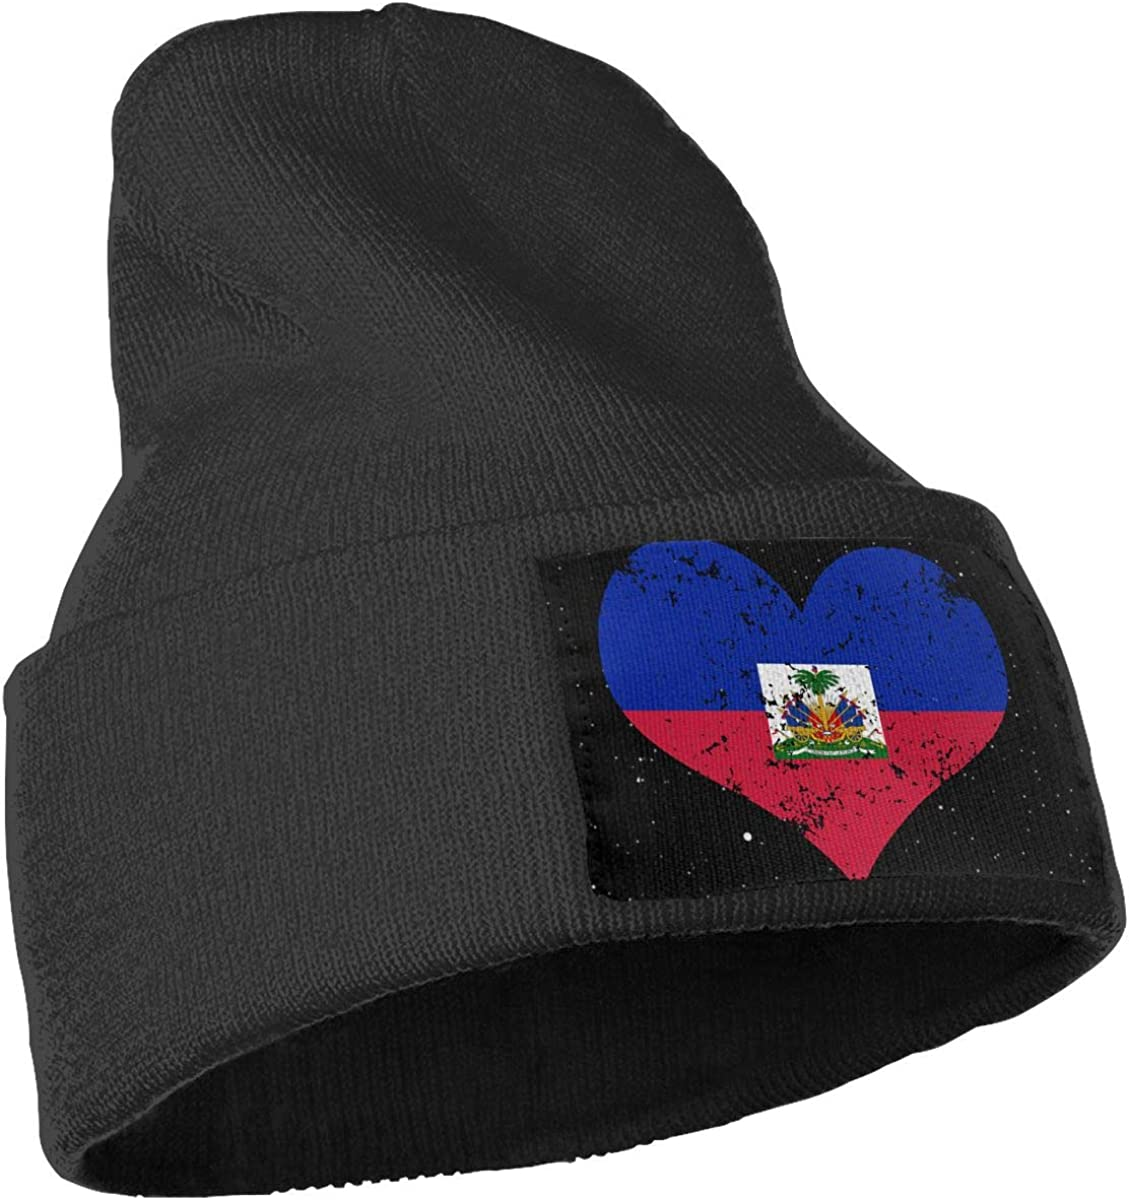 Haiti Heart Flag Ski Cap Men Women Knit Hats Stretchy /& Soft Beanie